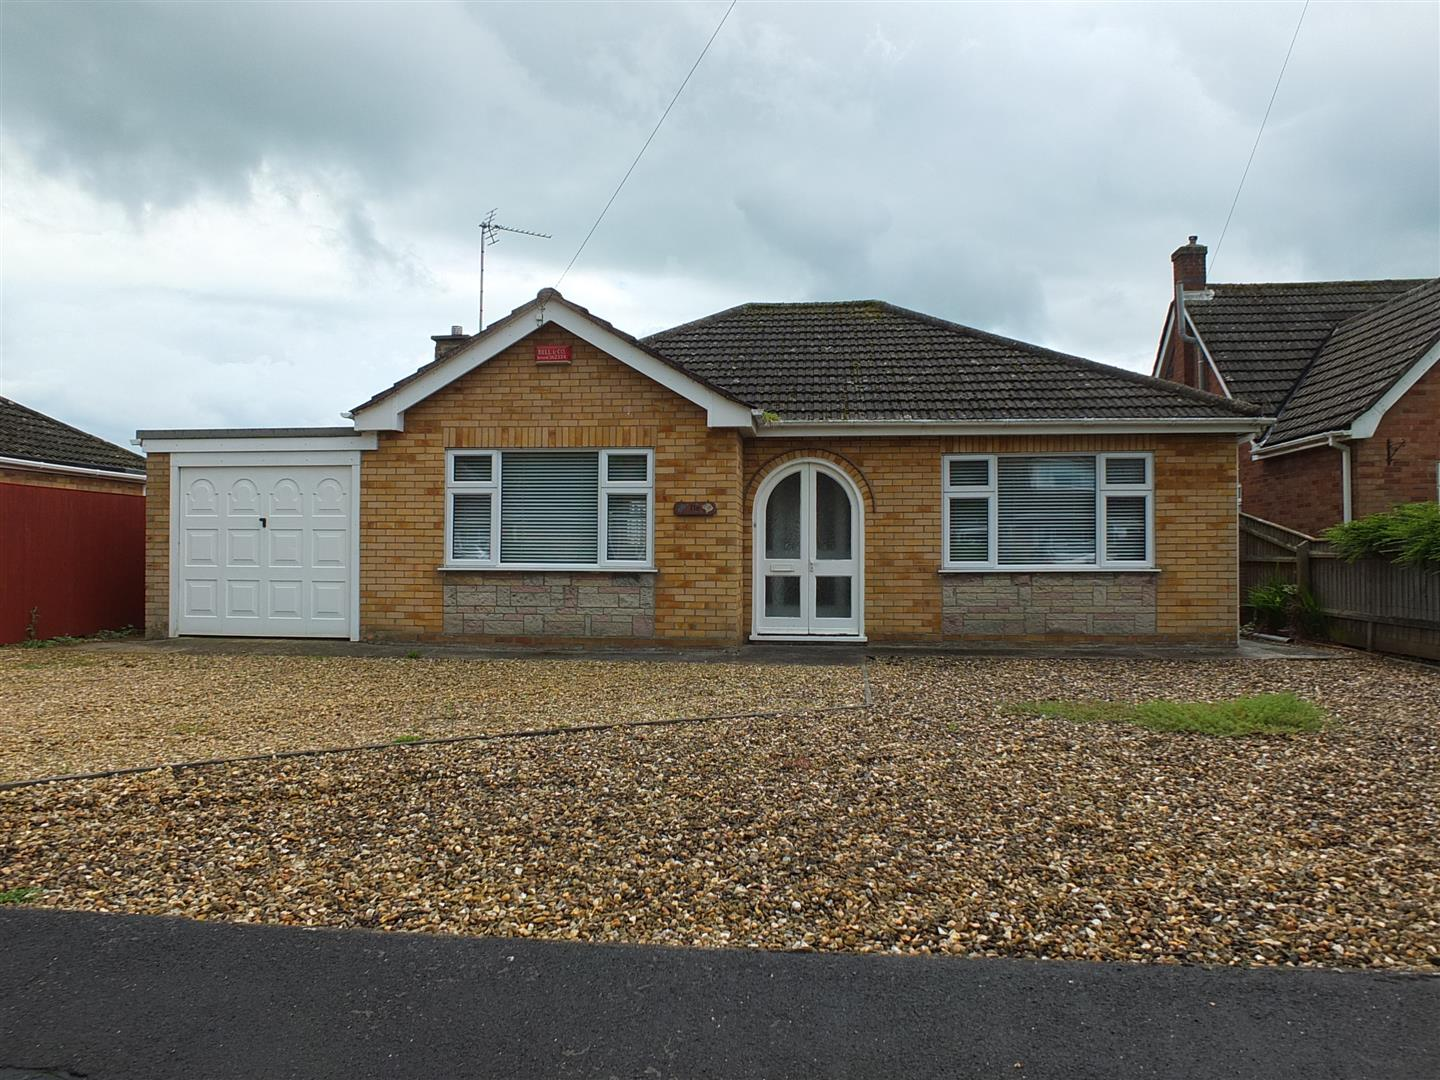 2 bed detached bungalow to rent in Long Sutton Spalding, PE12 9BZ, PE12